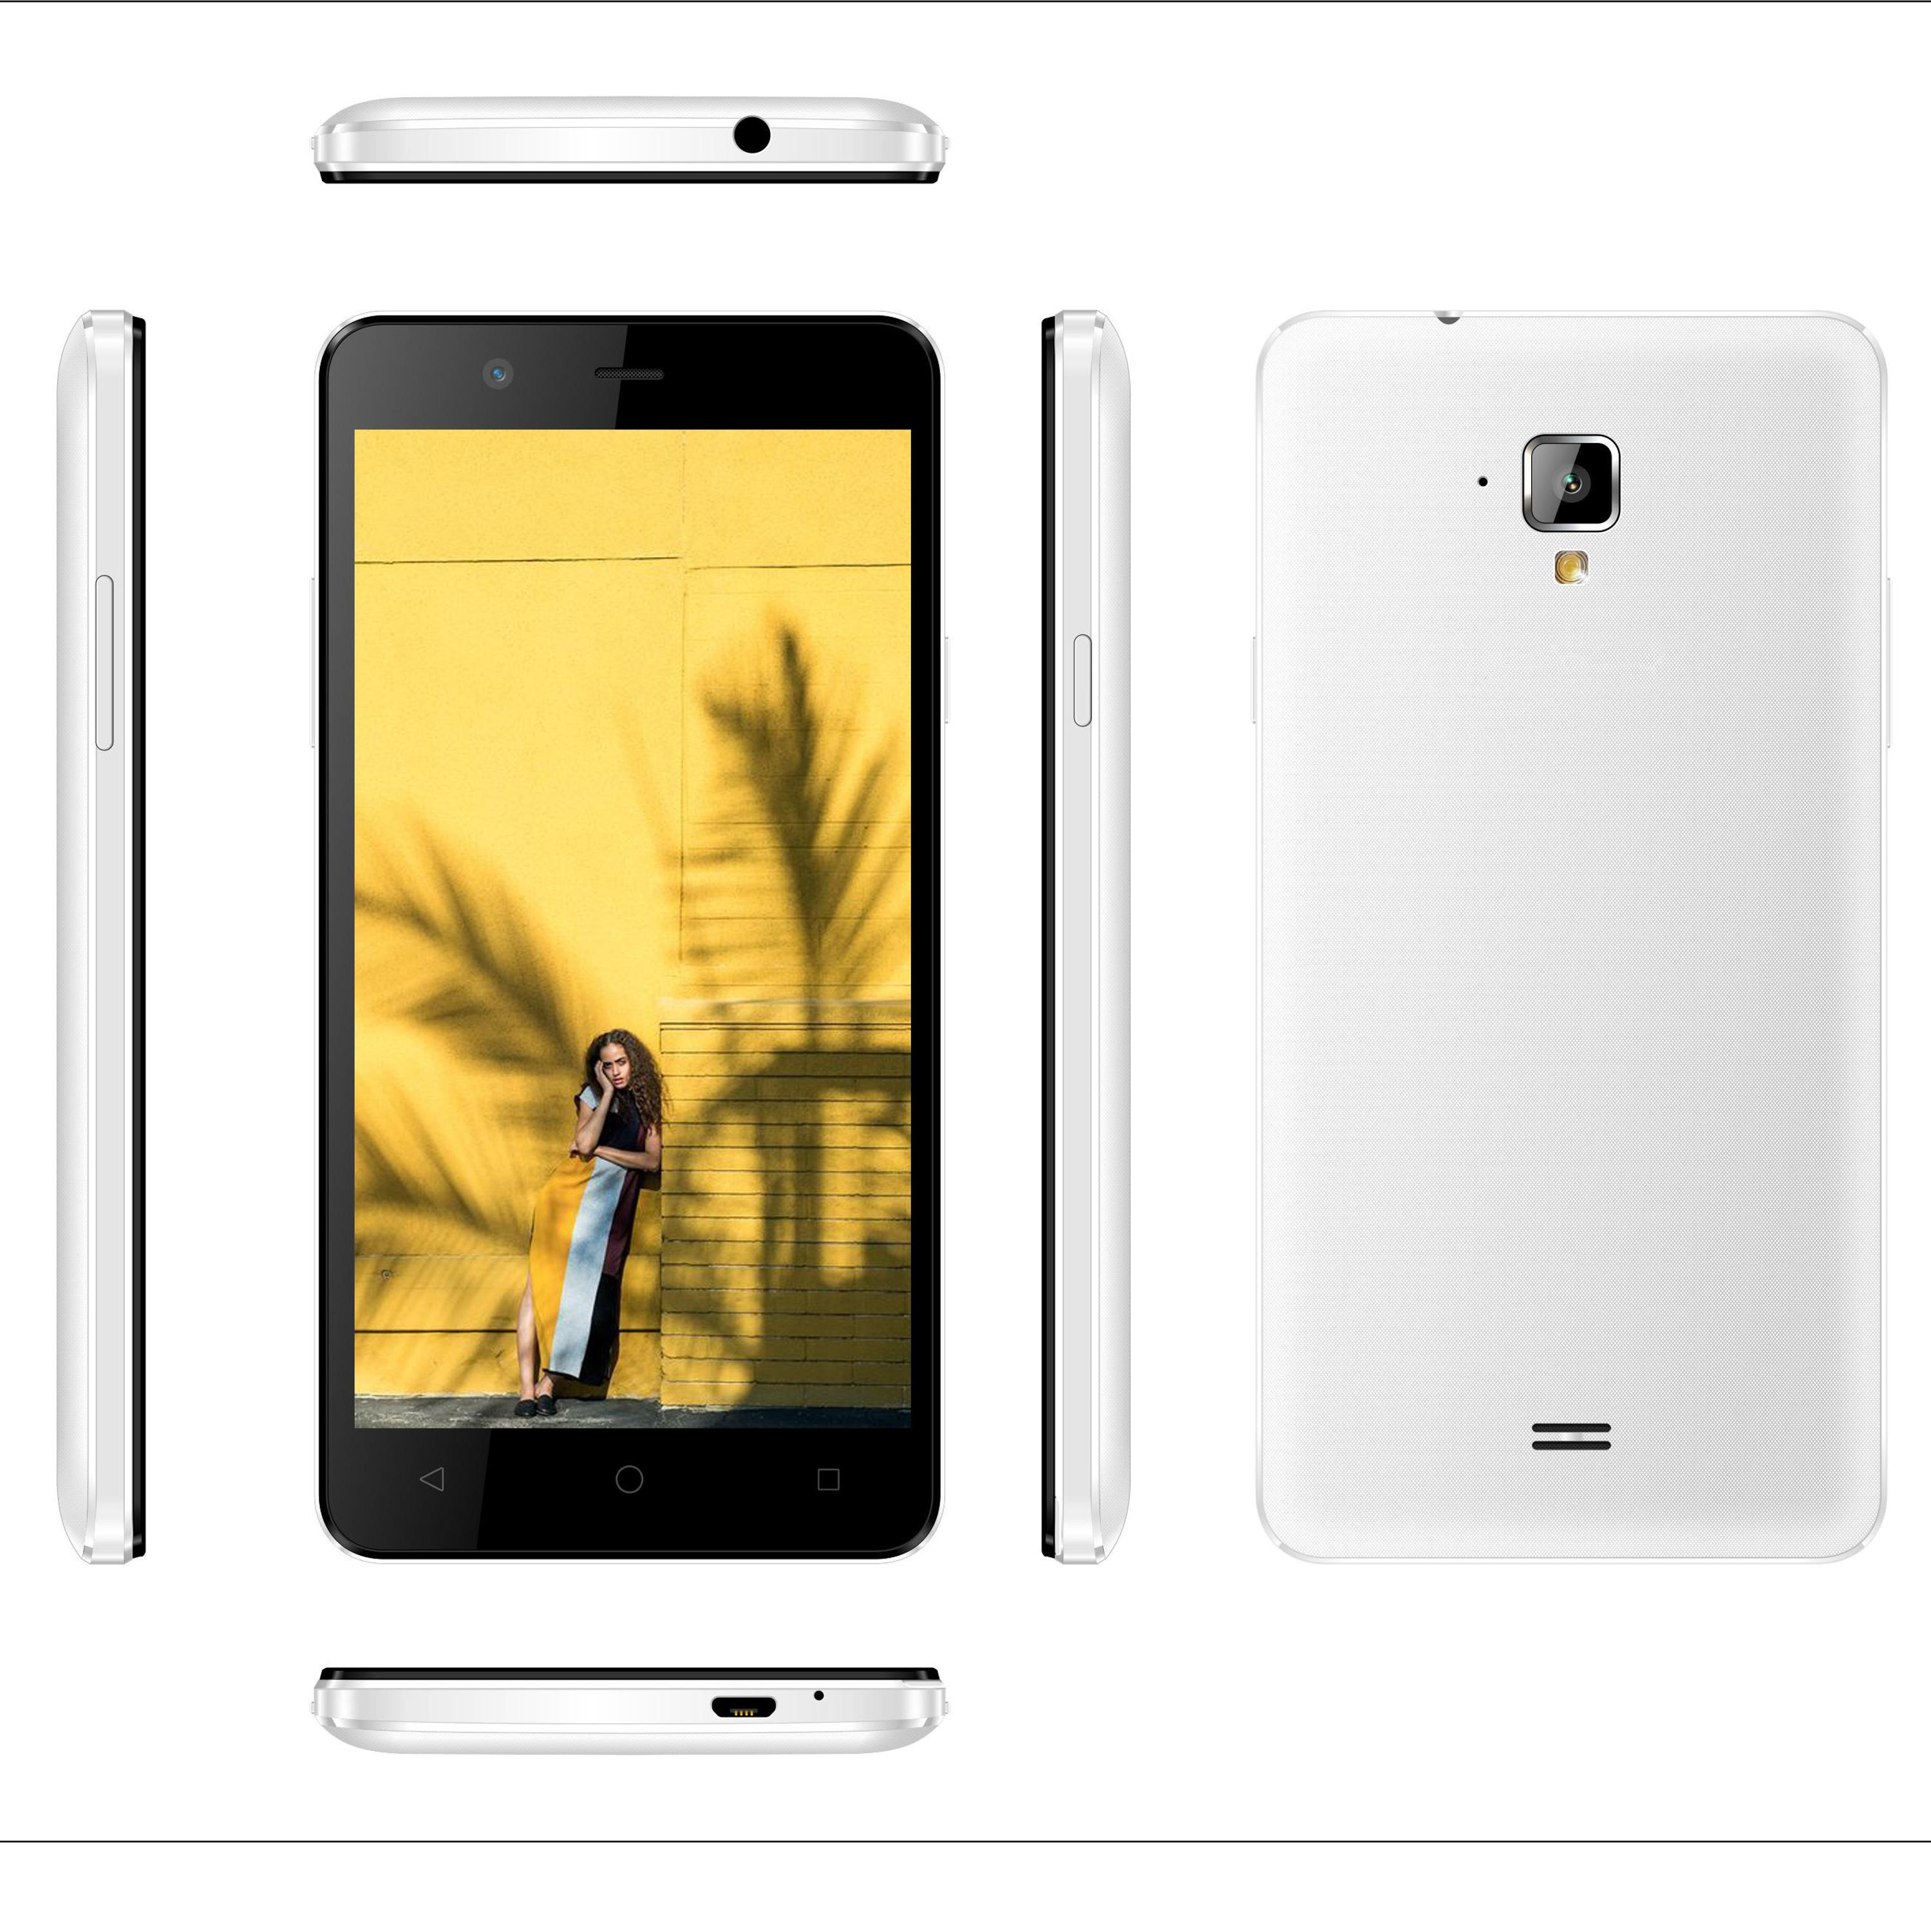 5inch Mobile Phones Suppliers And Manufacturers Smartphone Lenovo S90 5 Inch Display Quad Core Android Kitkat At